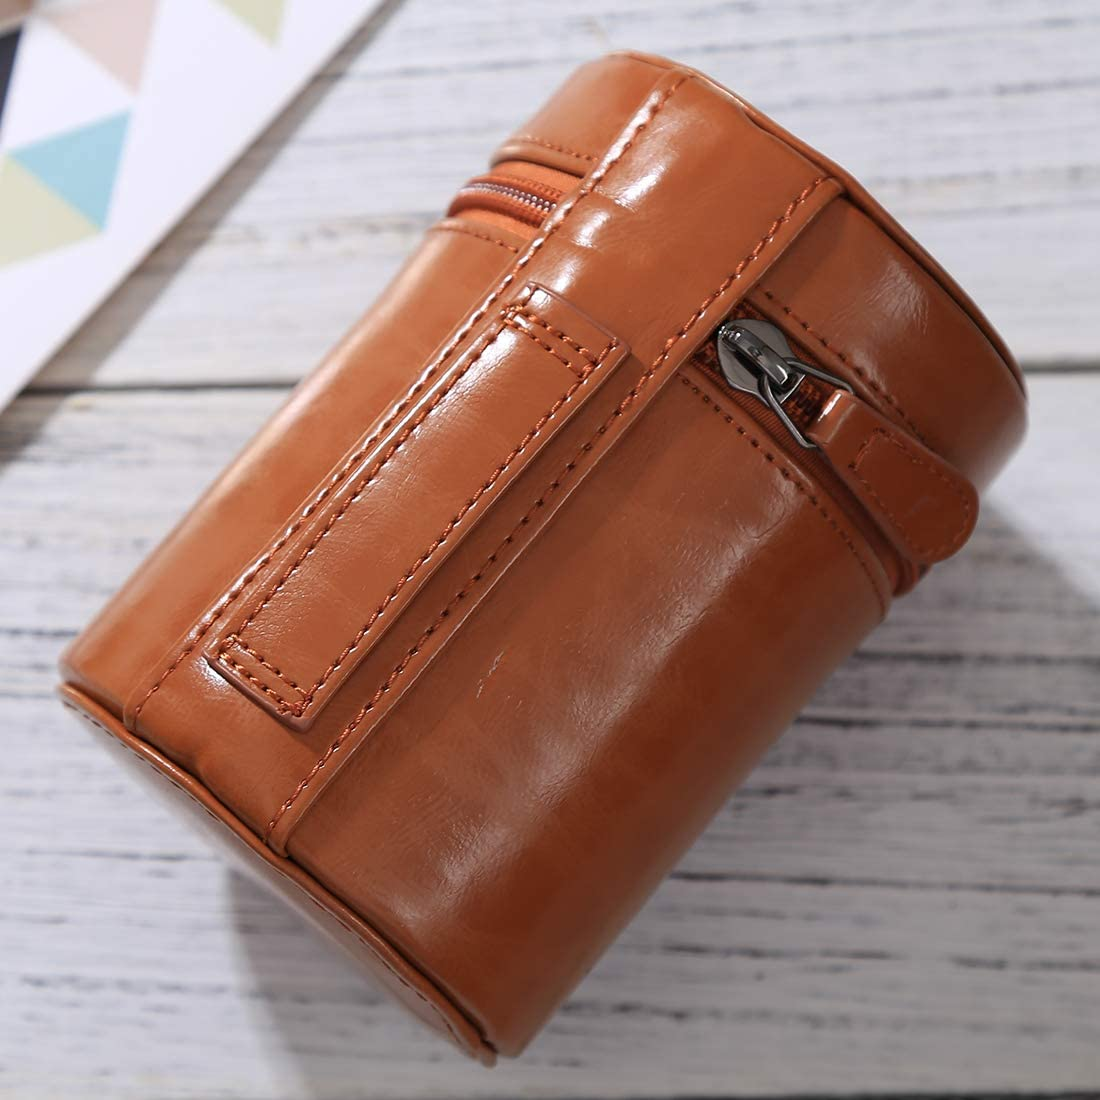 Black YANTAIANJANE Camera Accessories Medium Lens Case Zippered PU Leather Pouch Box for DSLR Camera Lens Size: 13x9x9cm Color : Coffee